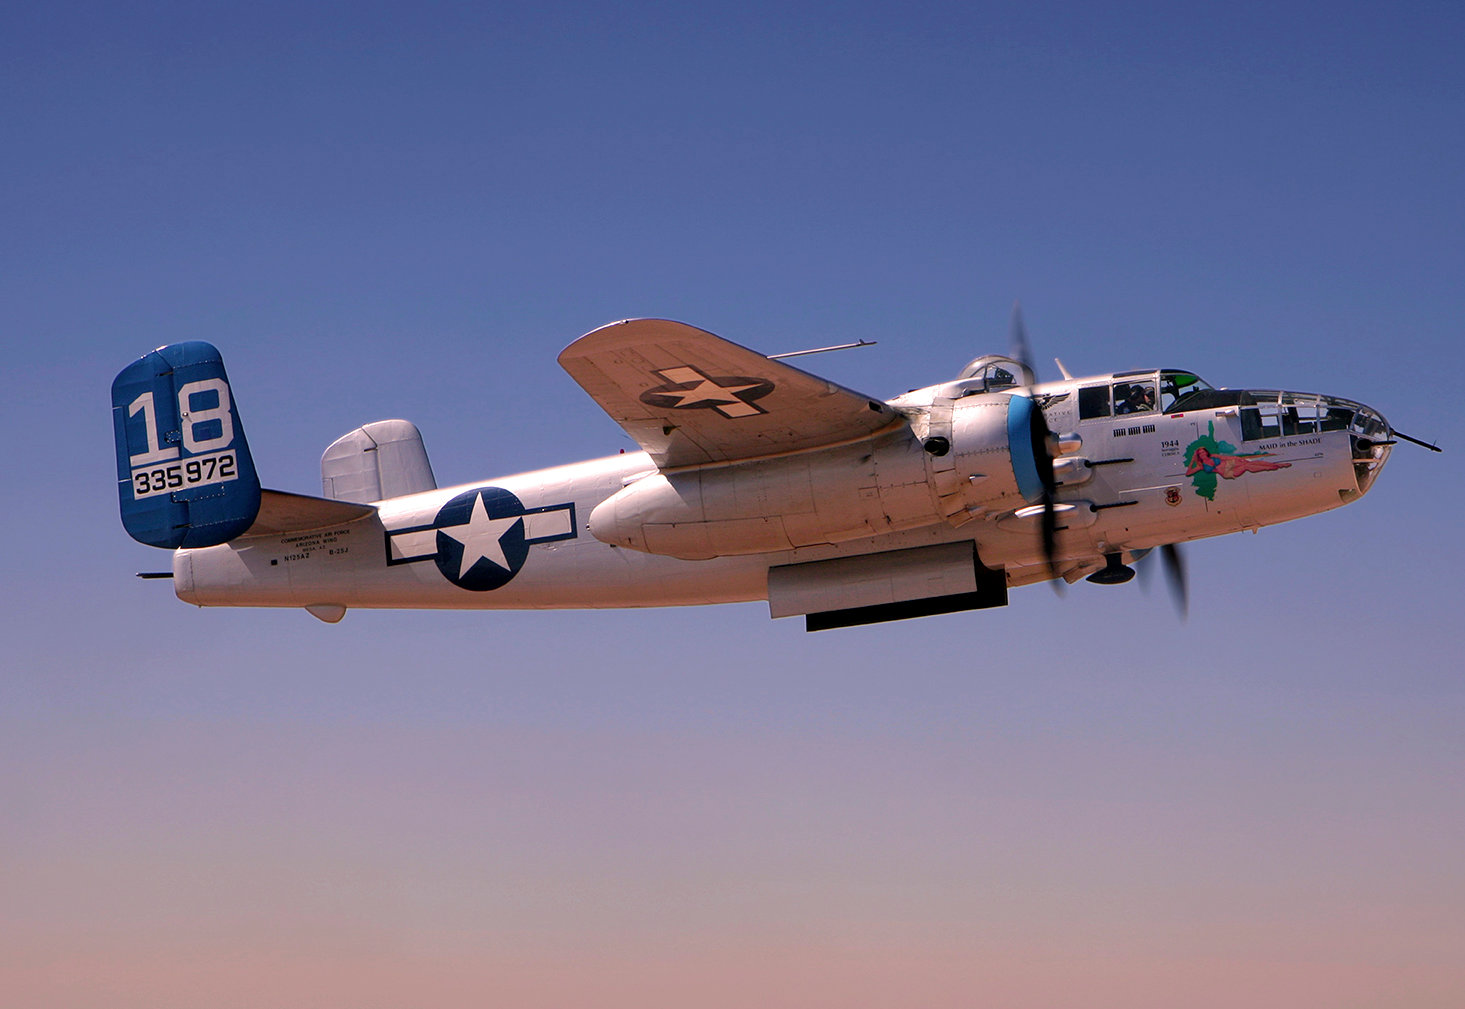 The Commemorative Air Force in Mesa is the home to World War II planes like this B-25. Photo from Commemorative Air Force website at azcaf.org.